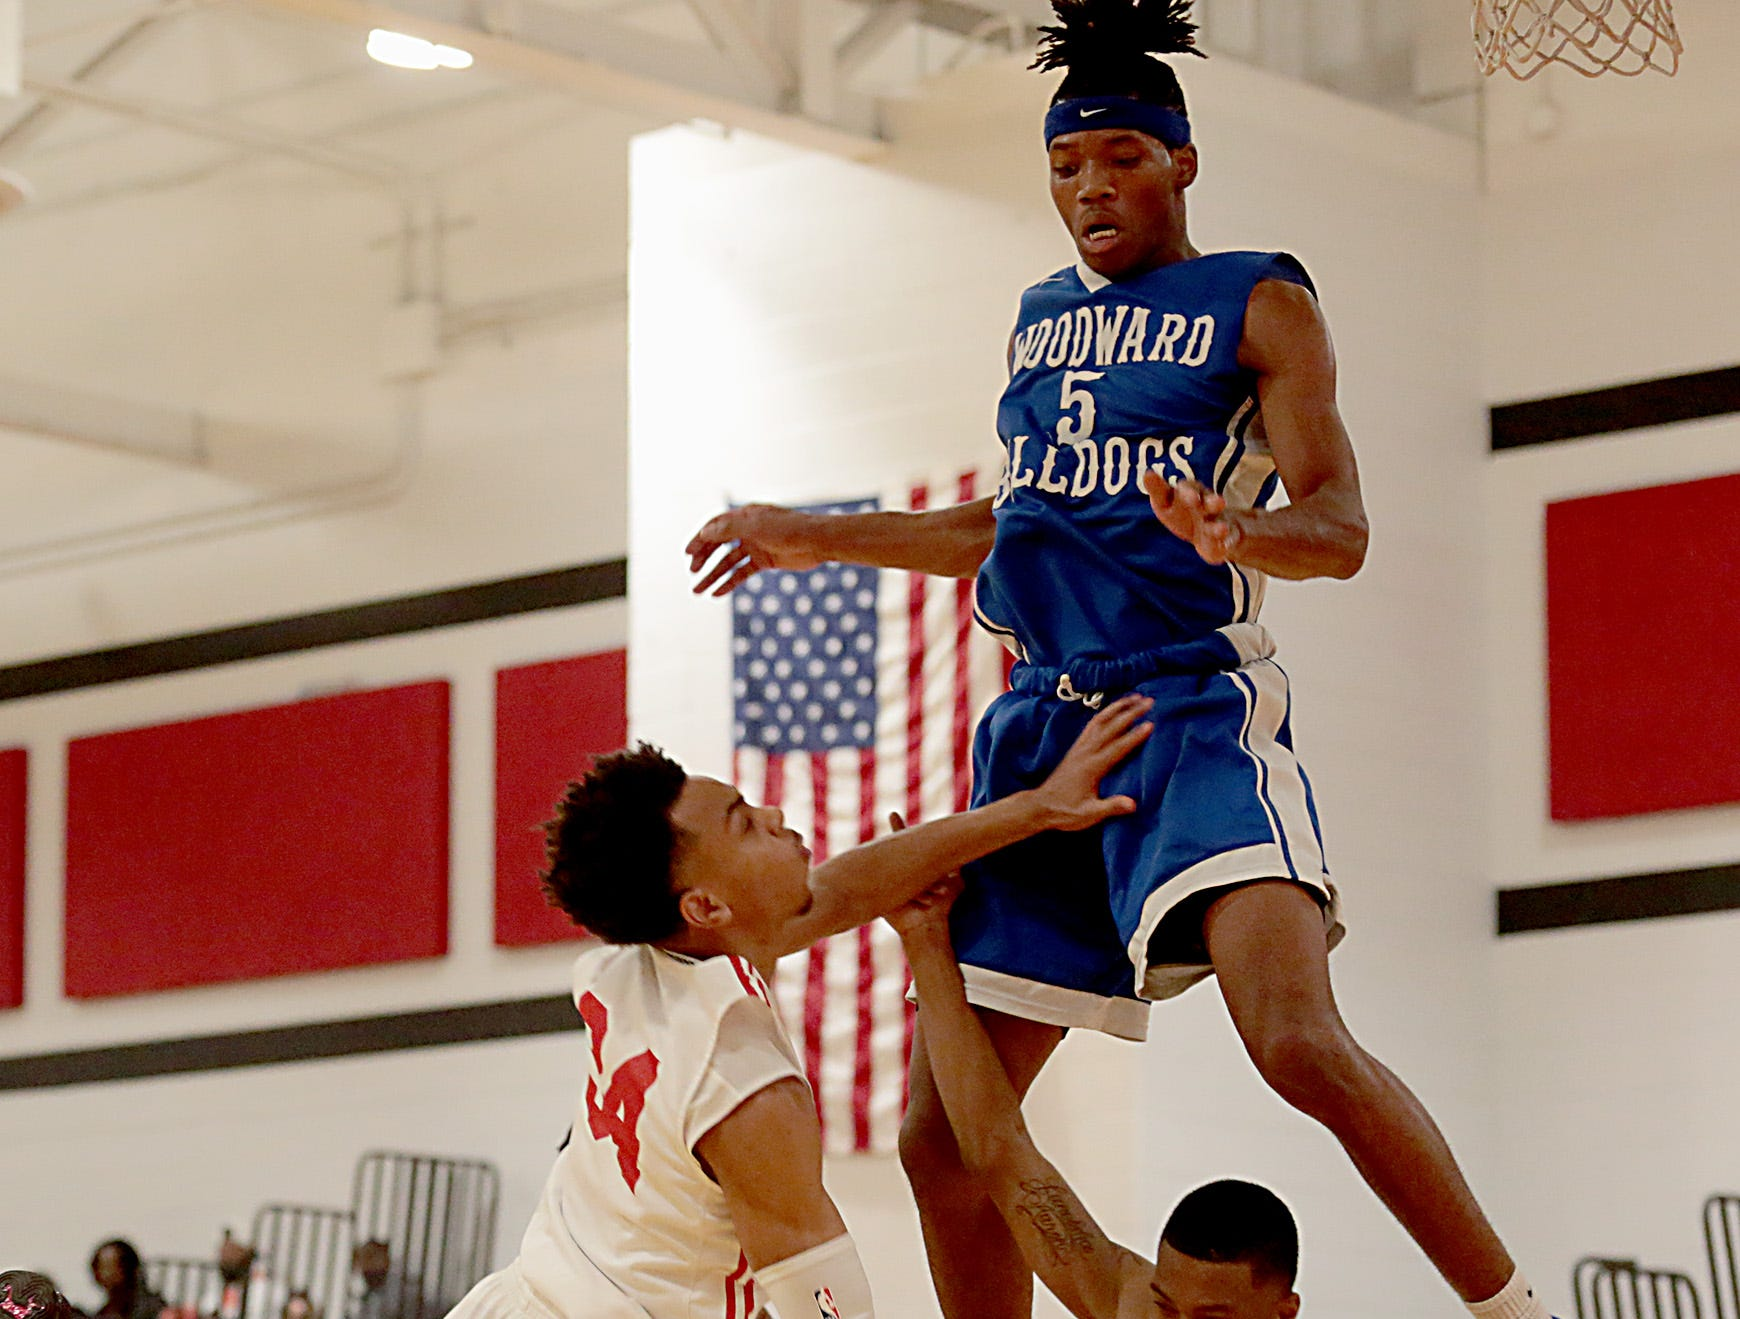 Woodward guard Dre Lewis (10) draws a blocking foul against Hughes guard Paul McMillan during their game at Hughes in Clifton Friday, Nov. 30, 2018. Woodward forward Davion Mace (5) is also in on the play.